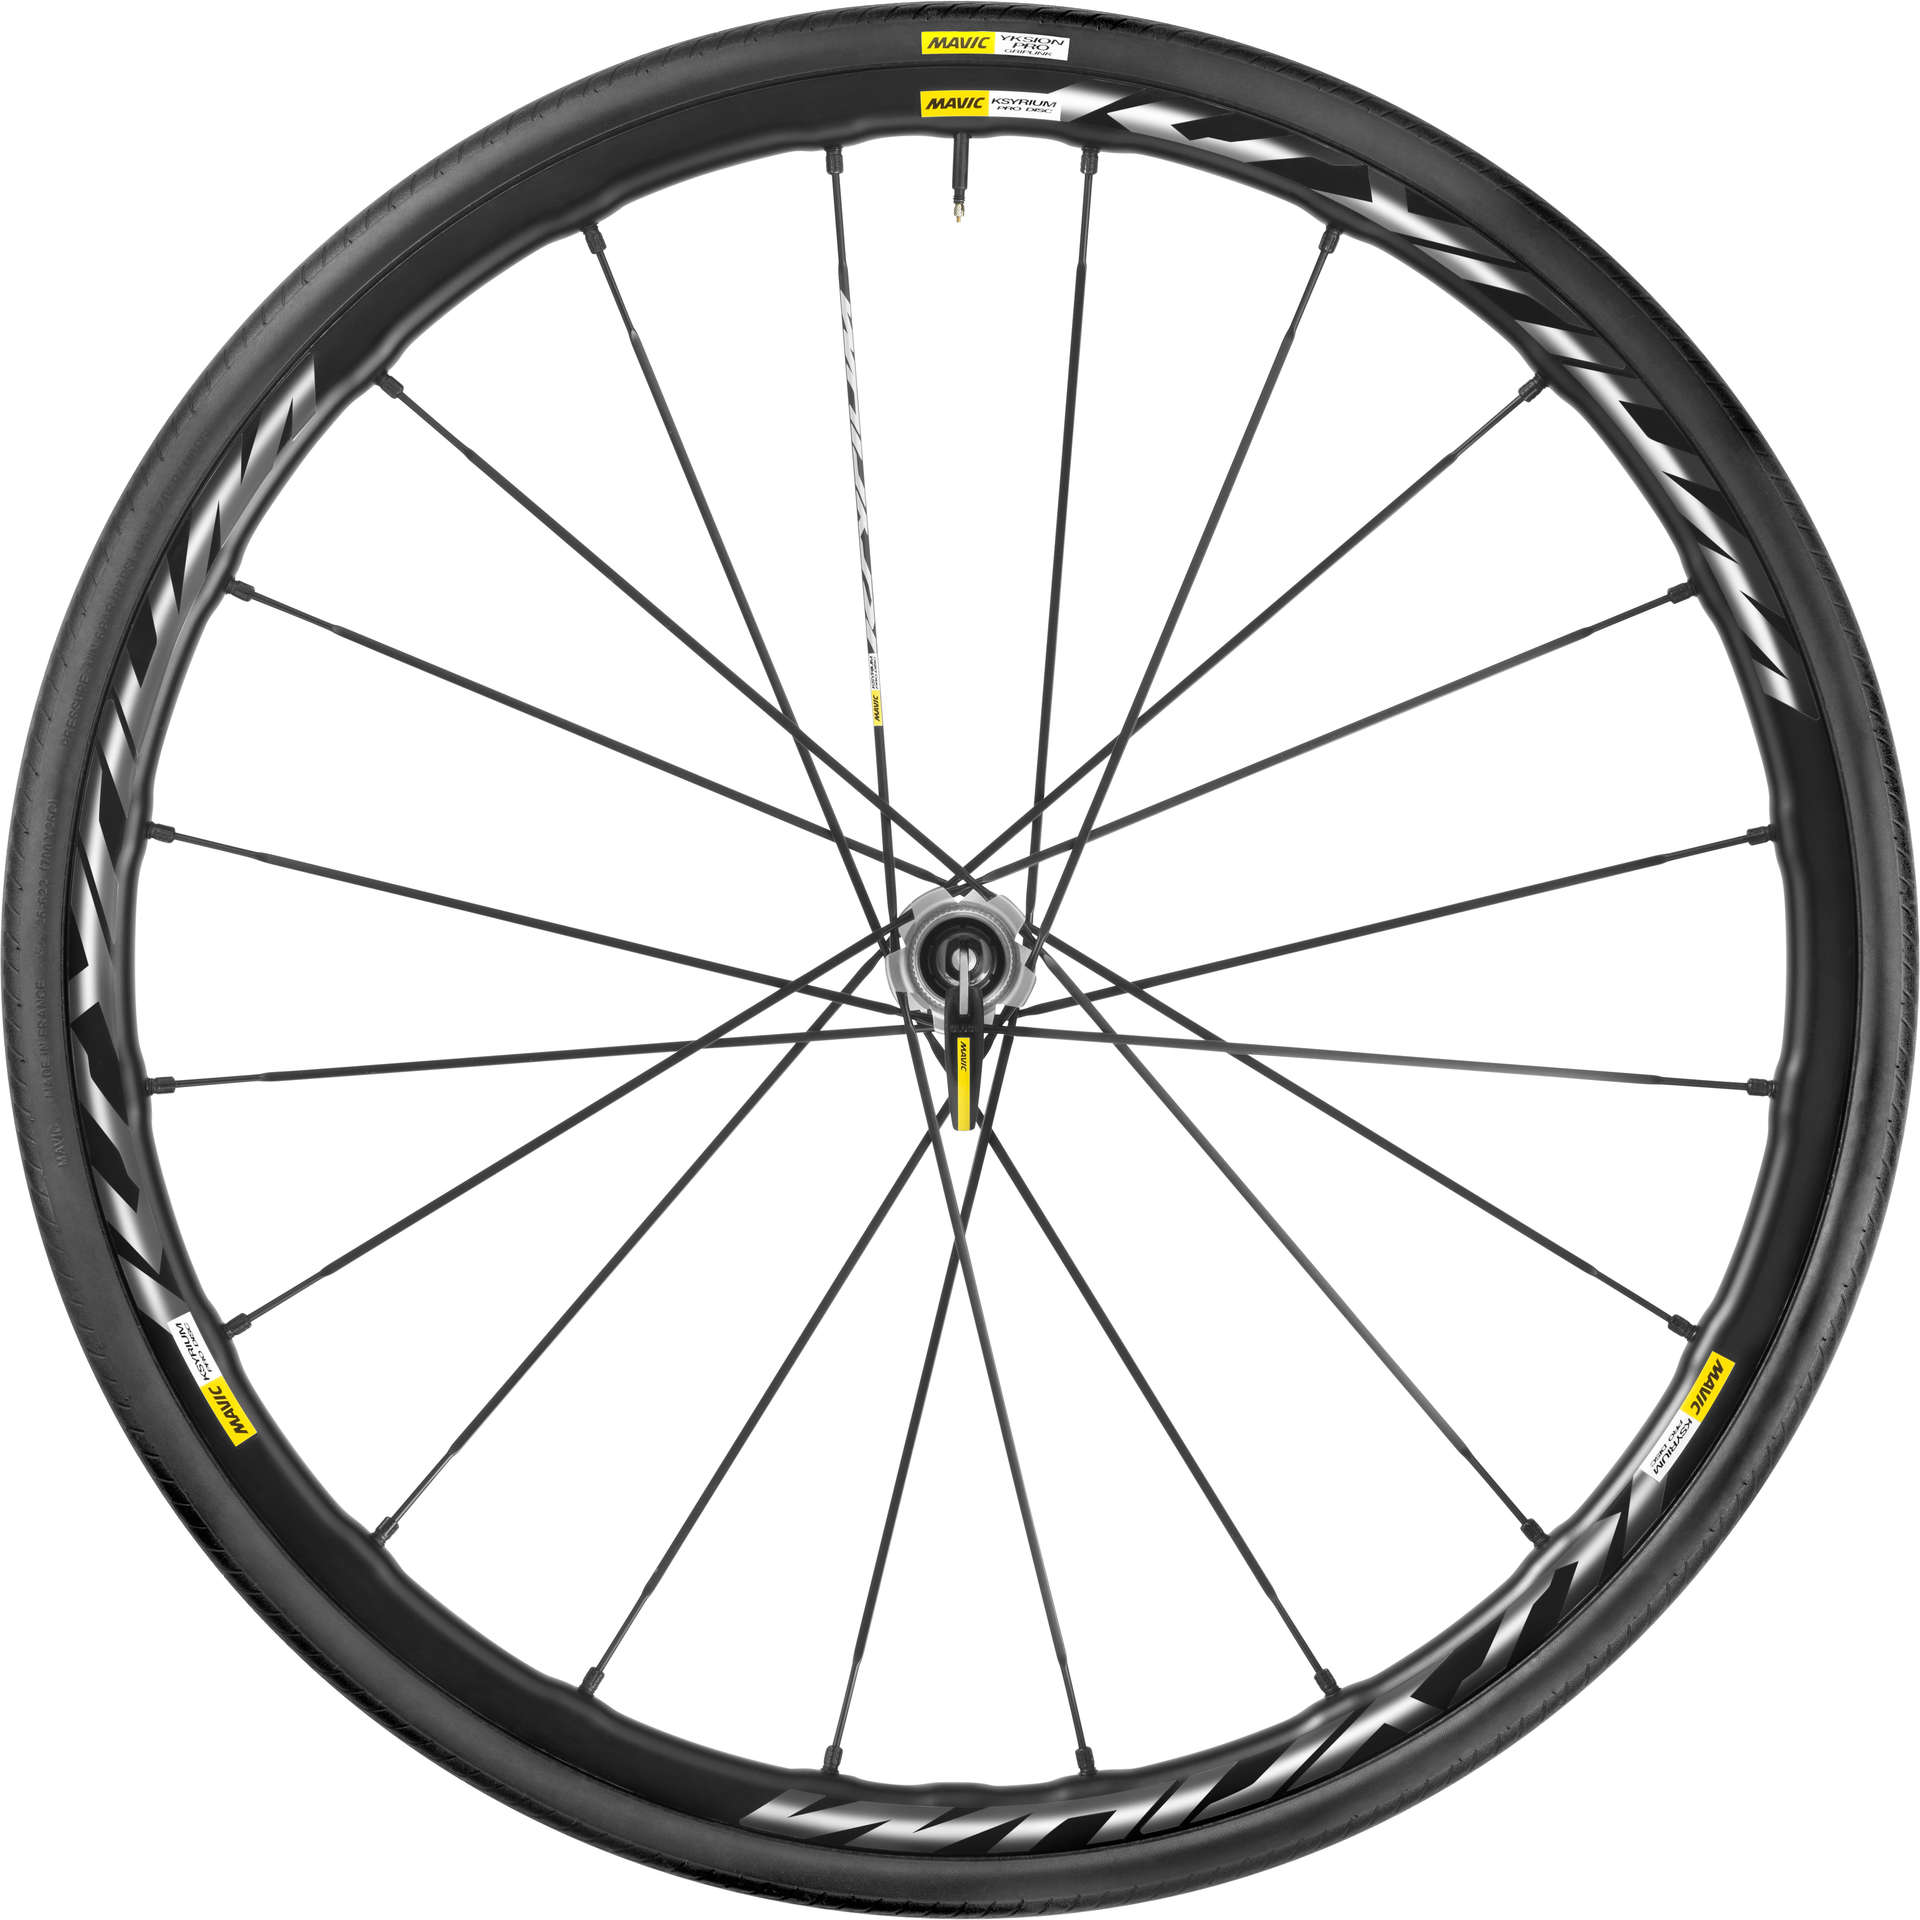 Prodisc Verlichting Ksyrium Pro Disc International Clincher Race Wielset Met 25mm Band Zwa